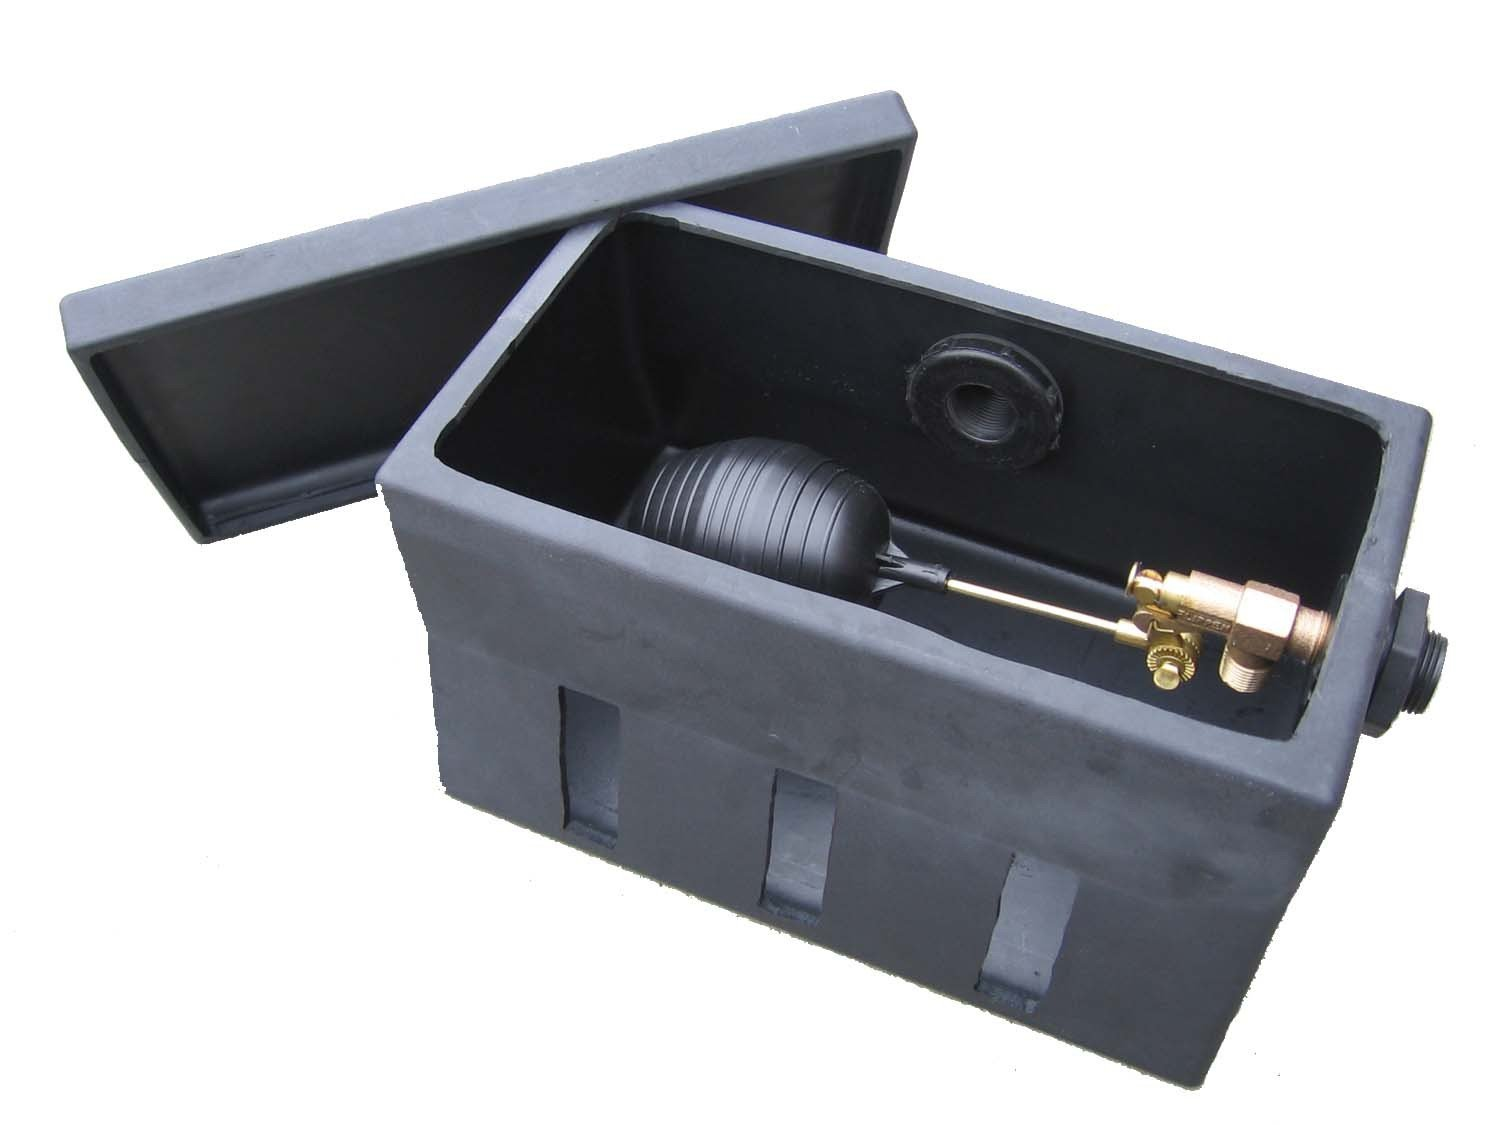 EasyPro Pond Products WFB Water Fill Box